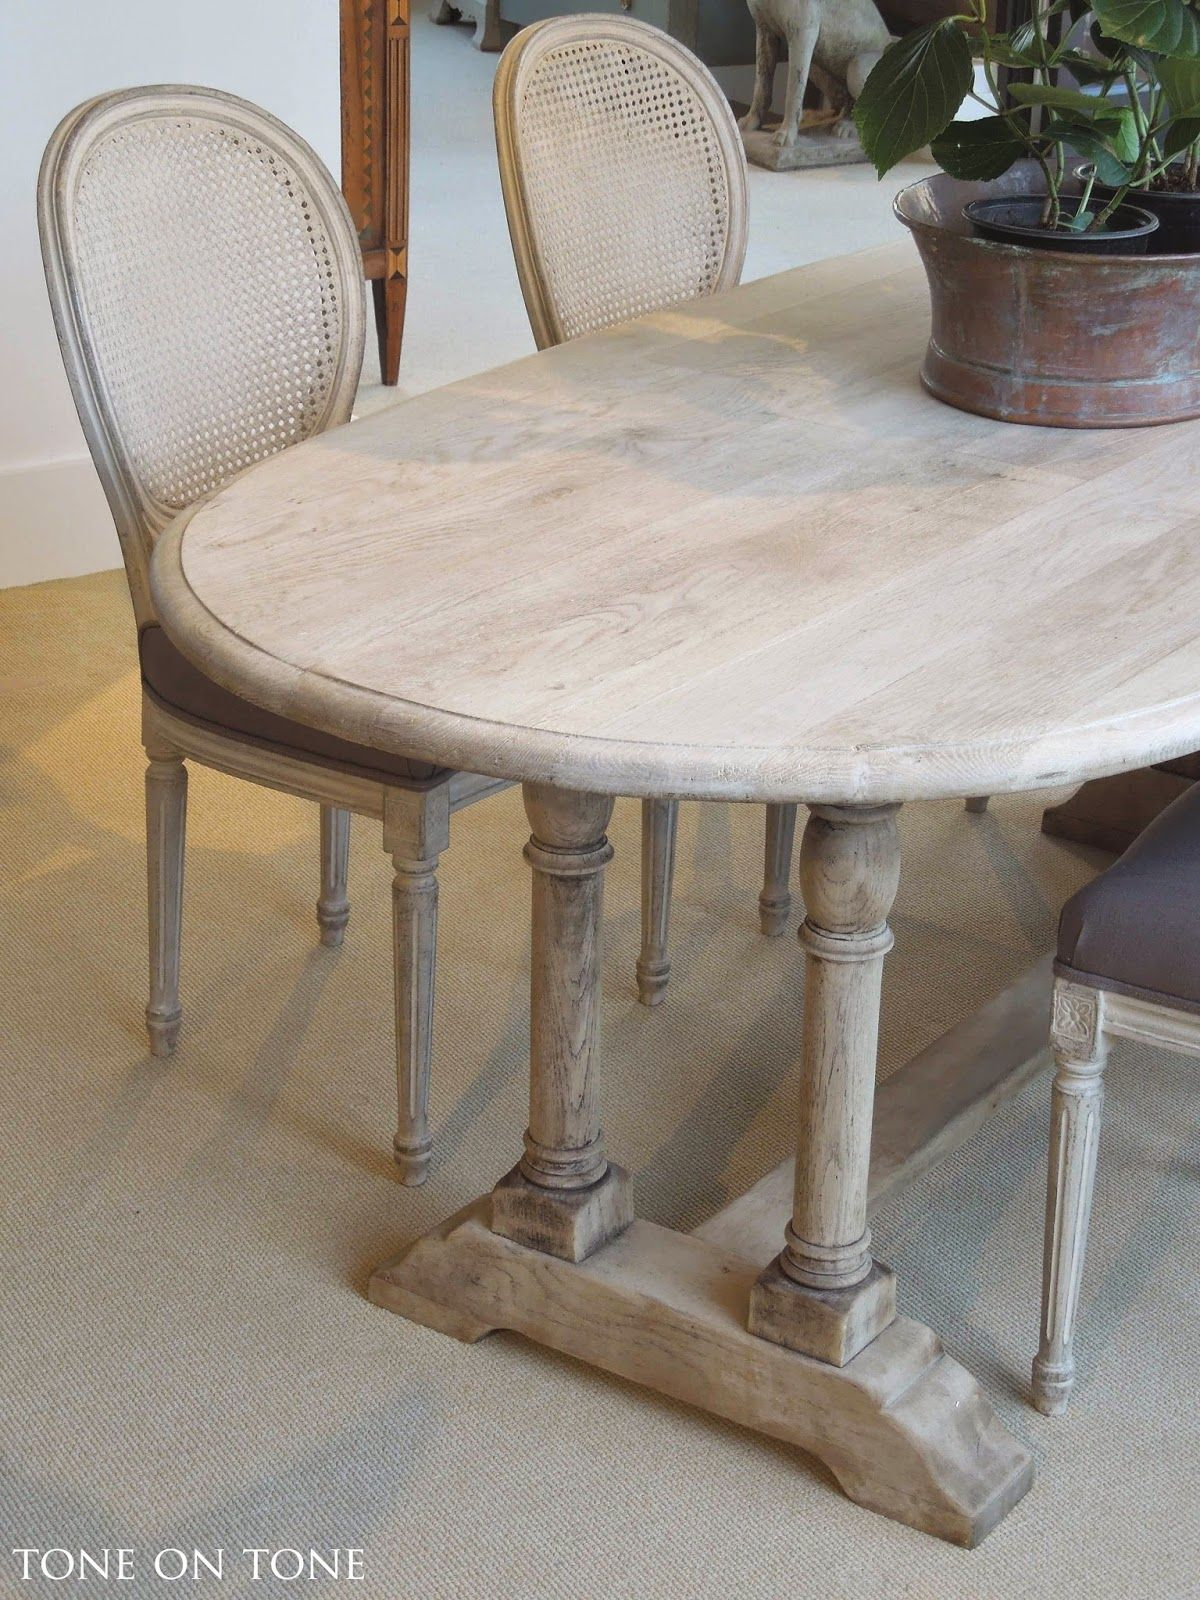 Here is a 19th century belgian bleached oak dining kitchen table with oval top and trestle base